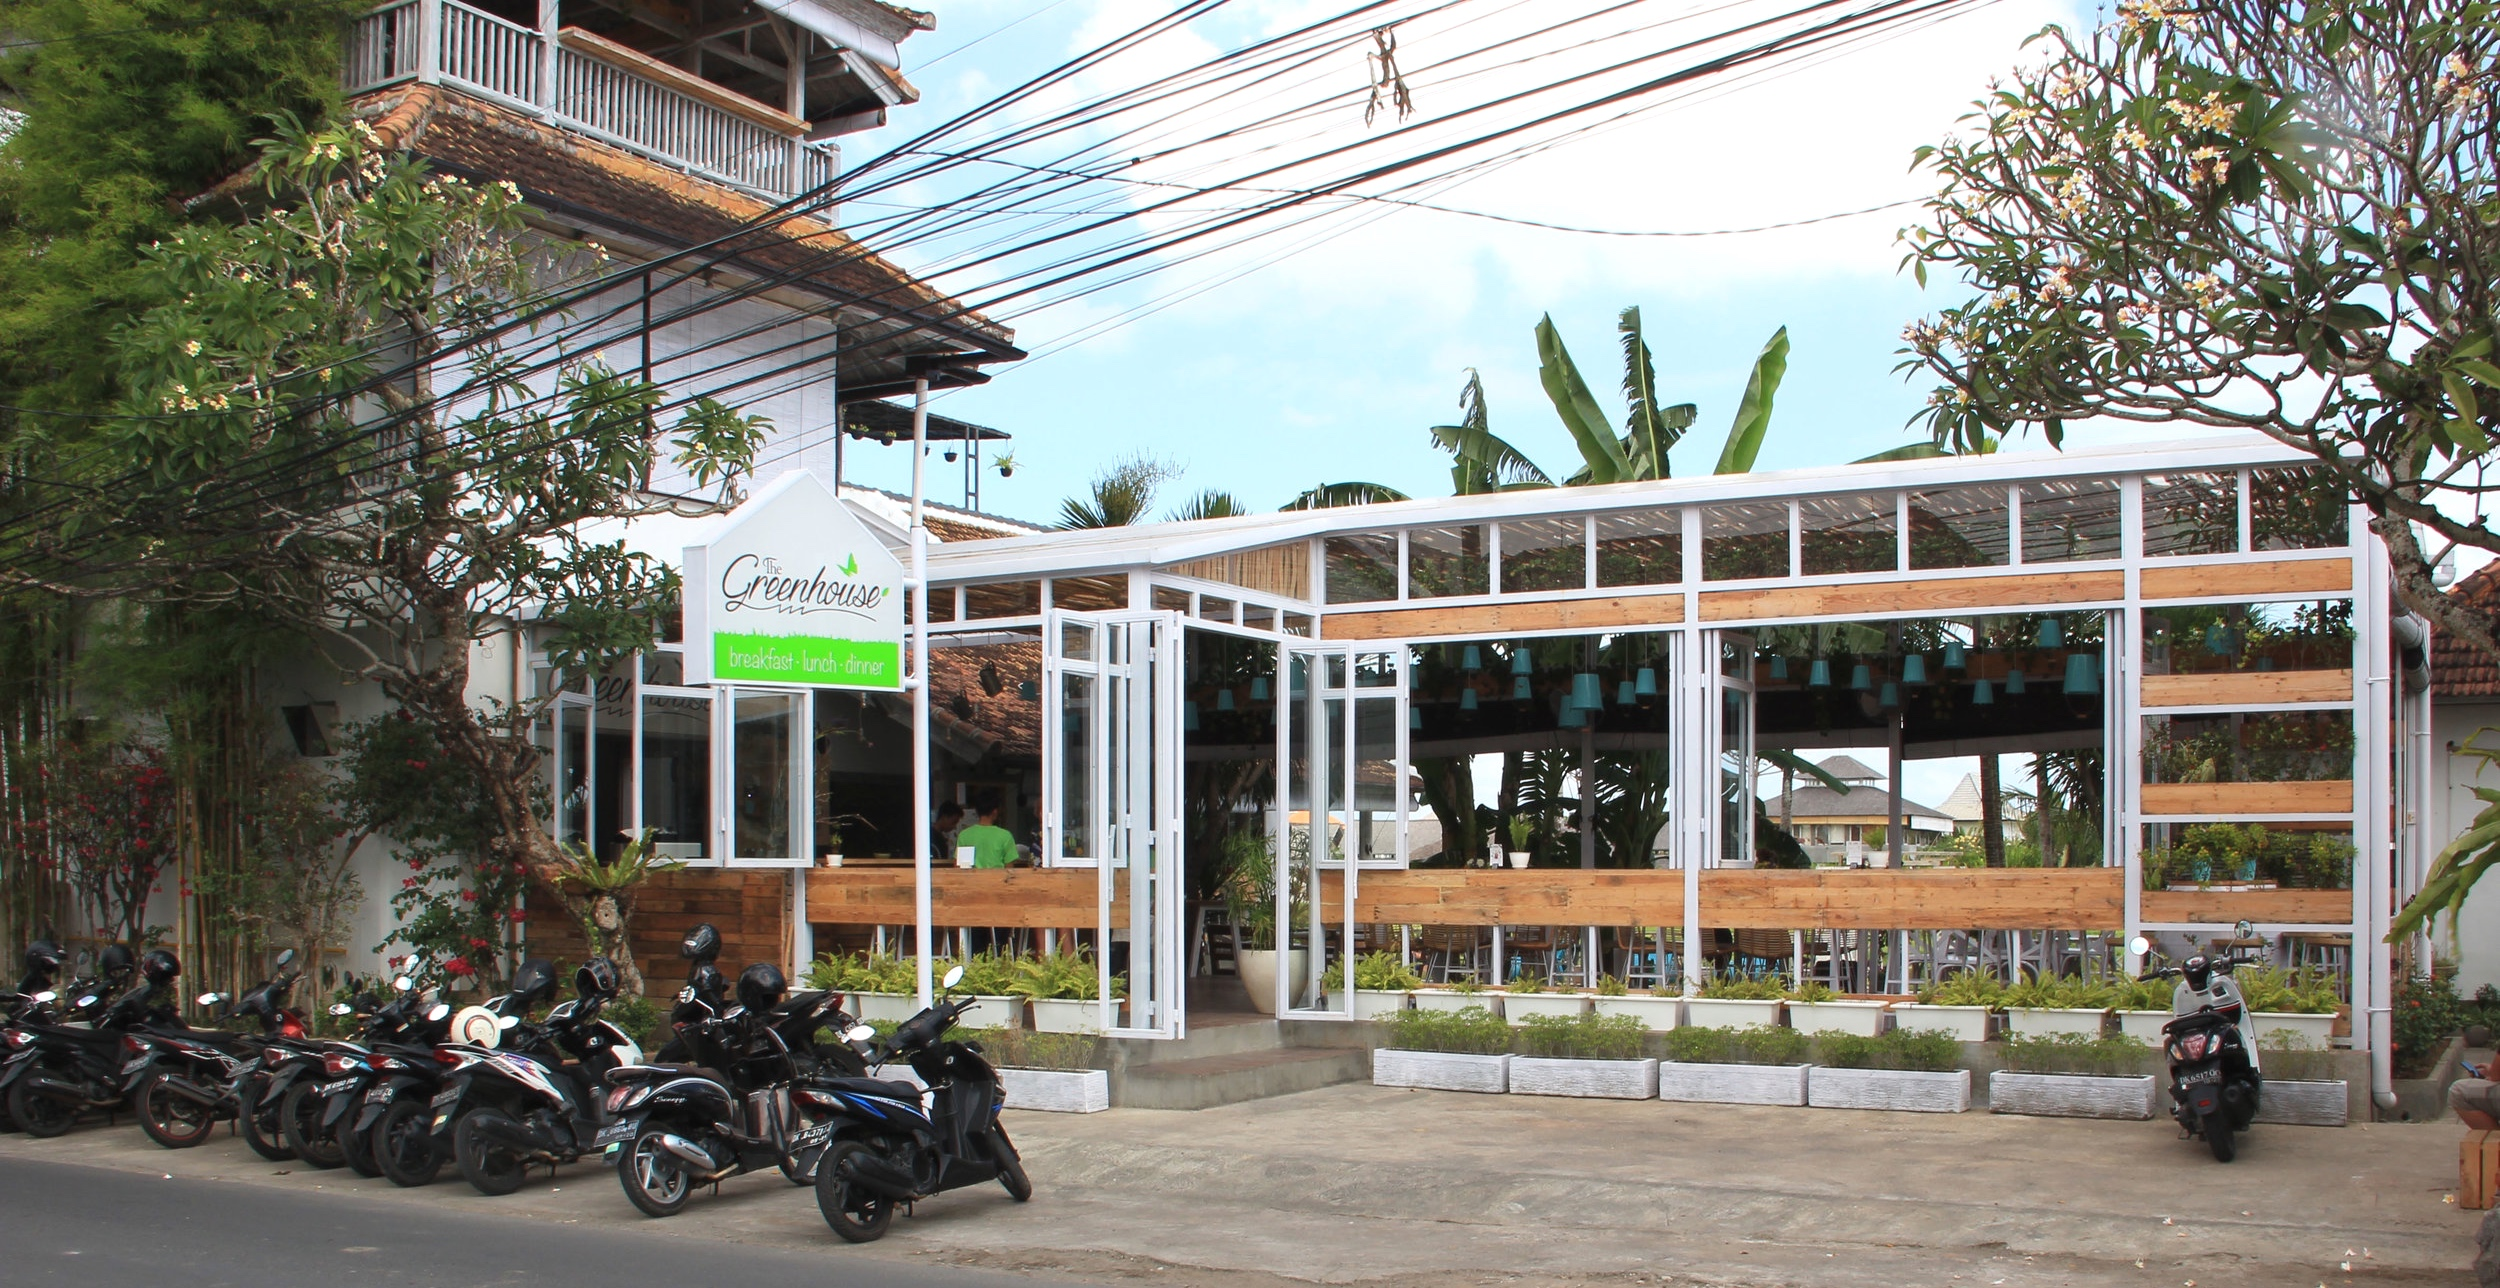 The Greenhouse Bali - Cafe and Restaurant 1 .JPG